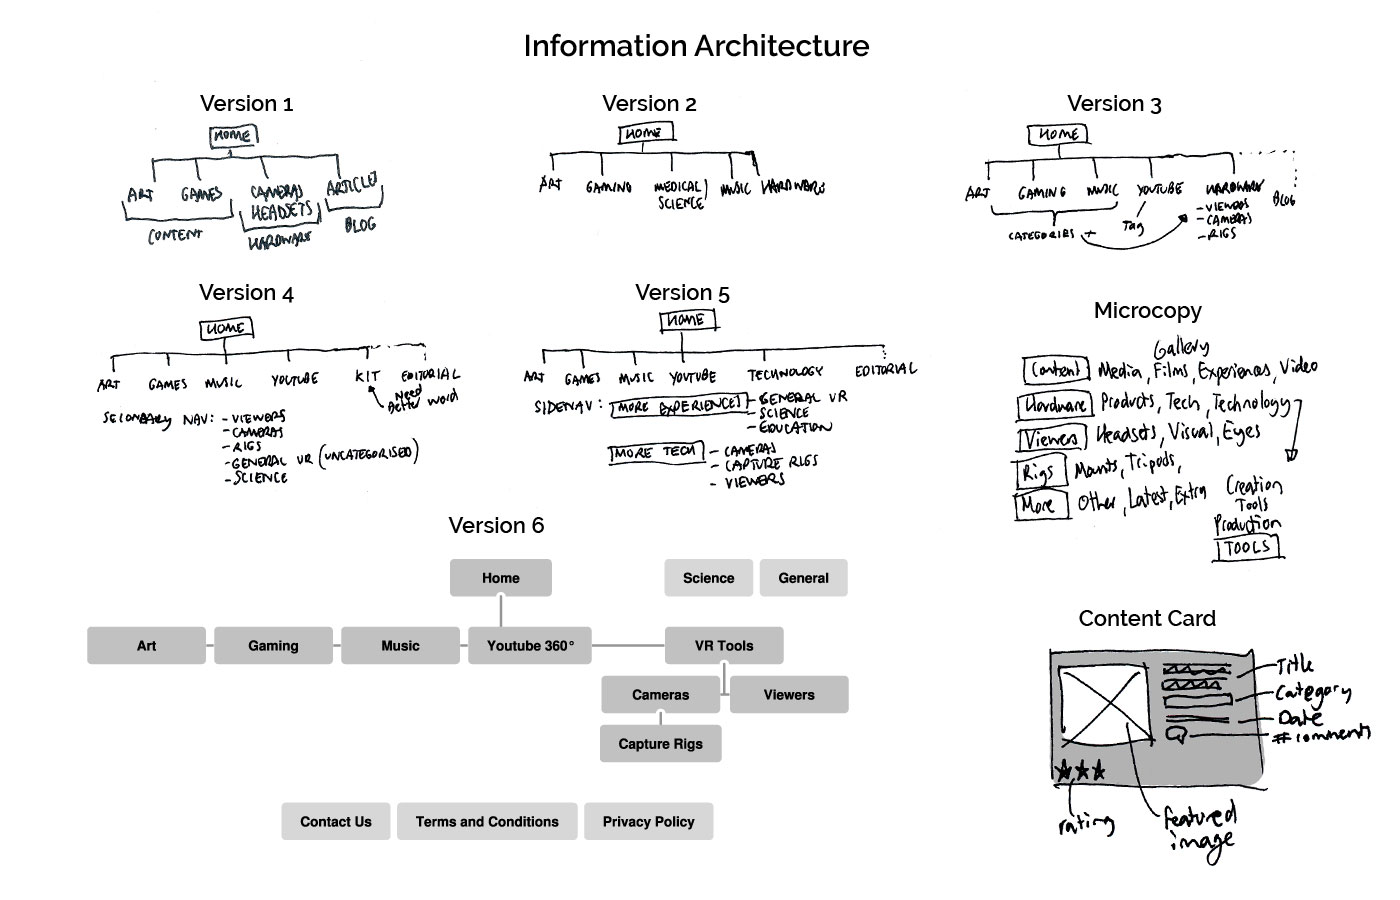 v-r reviews - information architecture